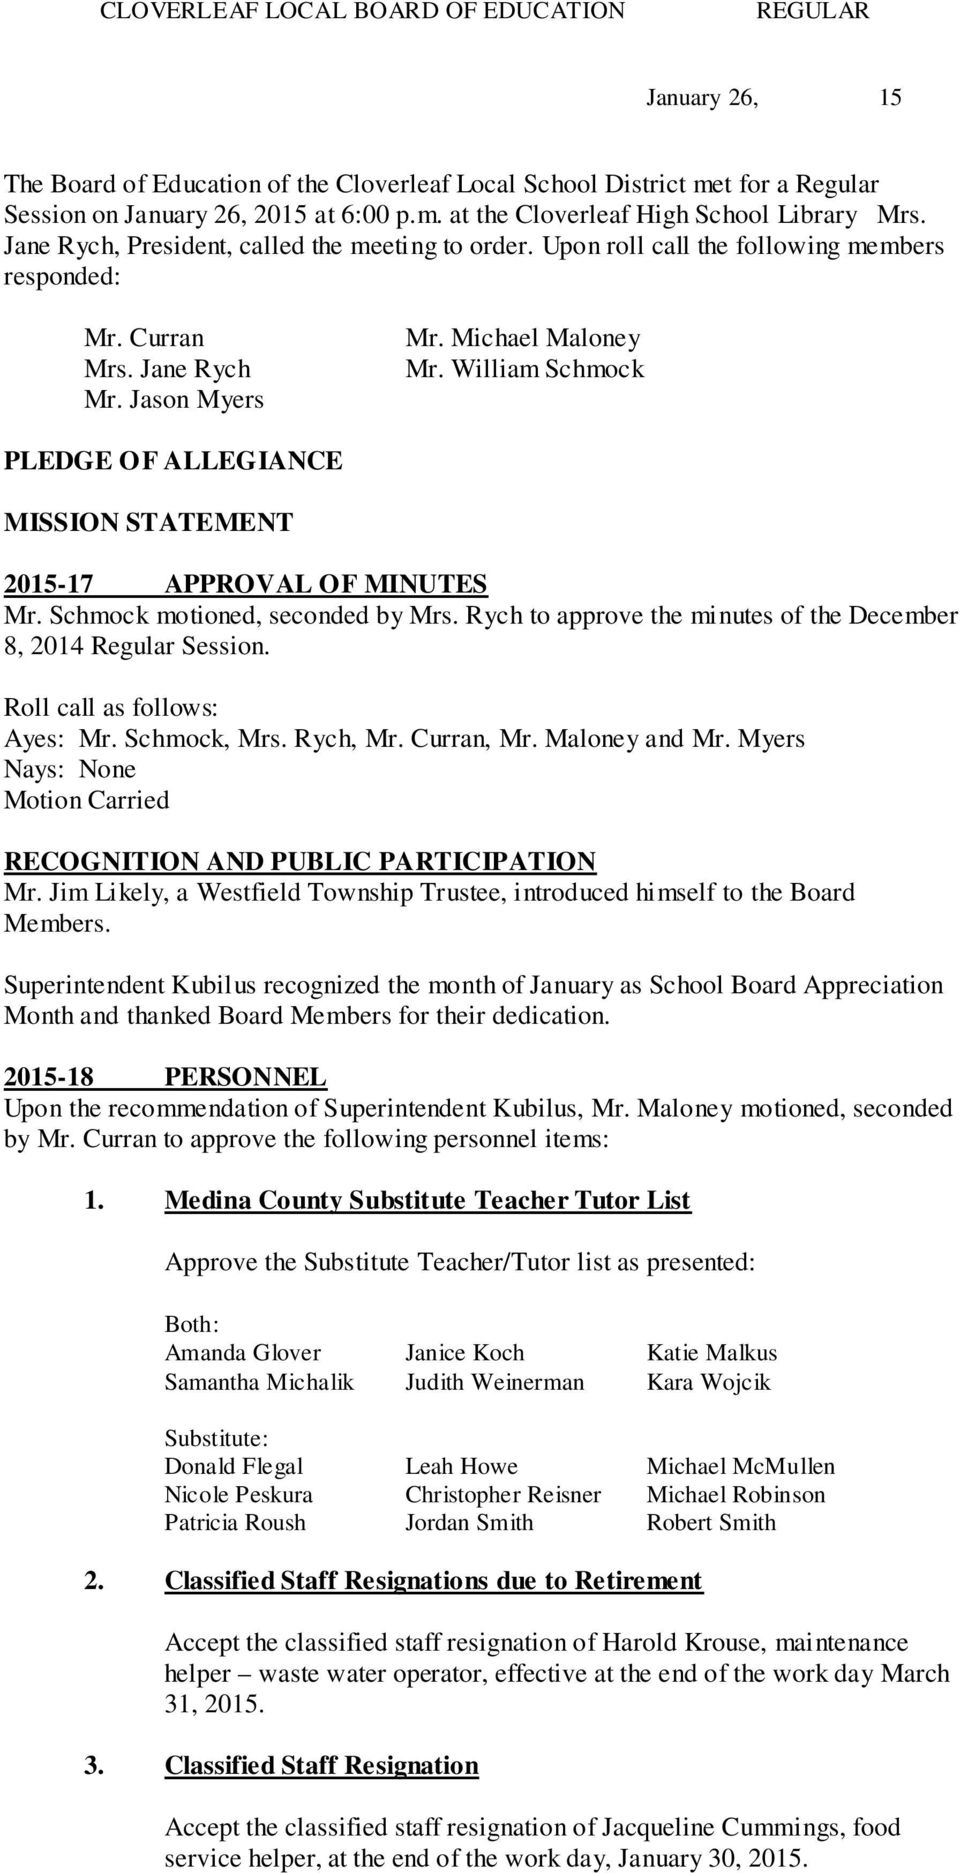 William Schmock PLEDGE OF ALLEGIANCE MISSION STATEMENT 2015-17 APPROVAL OF MINUTES Mr. Schmock motioned, seconded by Mrs. Rych to approve the minutes of the December 8, 2014 Regular Session. Ayes: Mr.